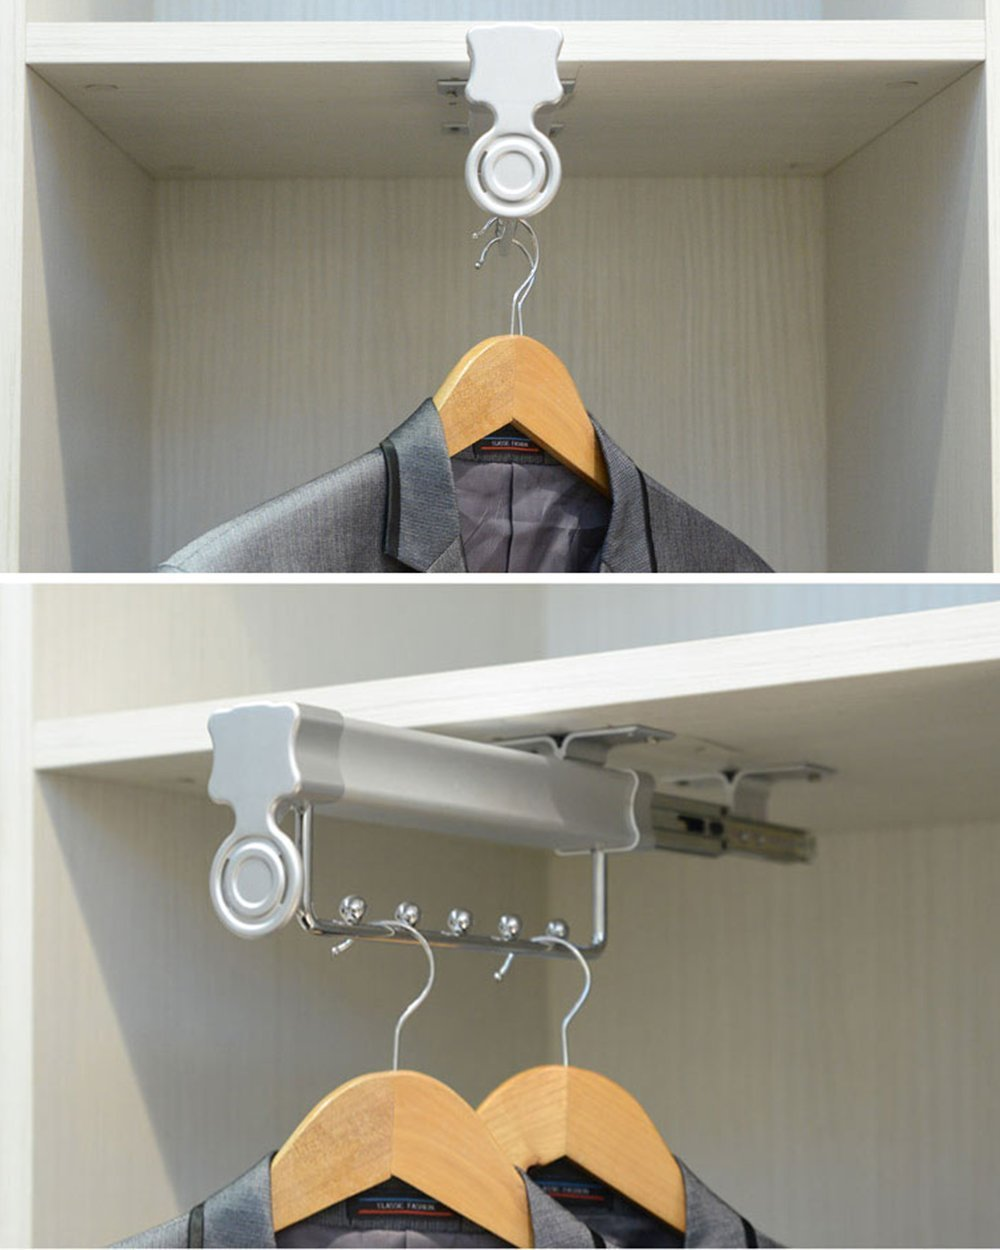 Cheap Sliding Closet Rod, Find Sliding Closet Rod Deals On ...